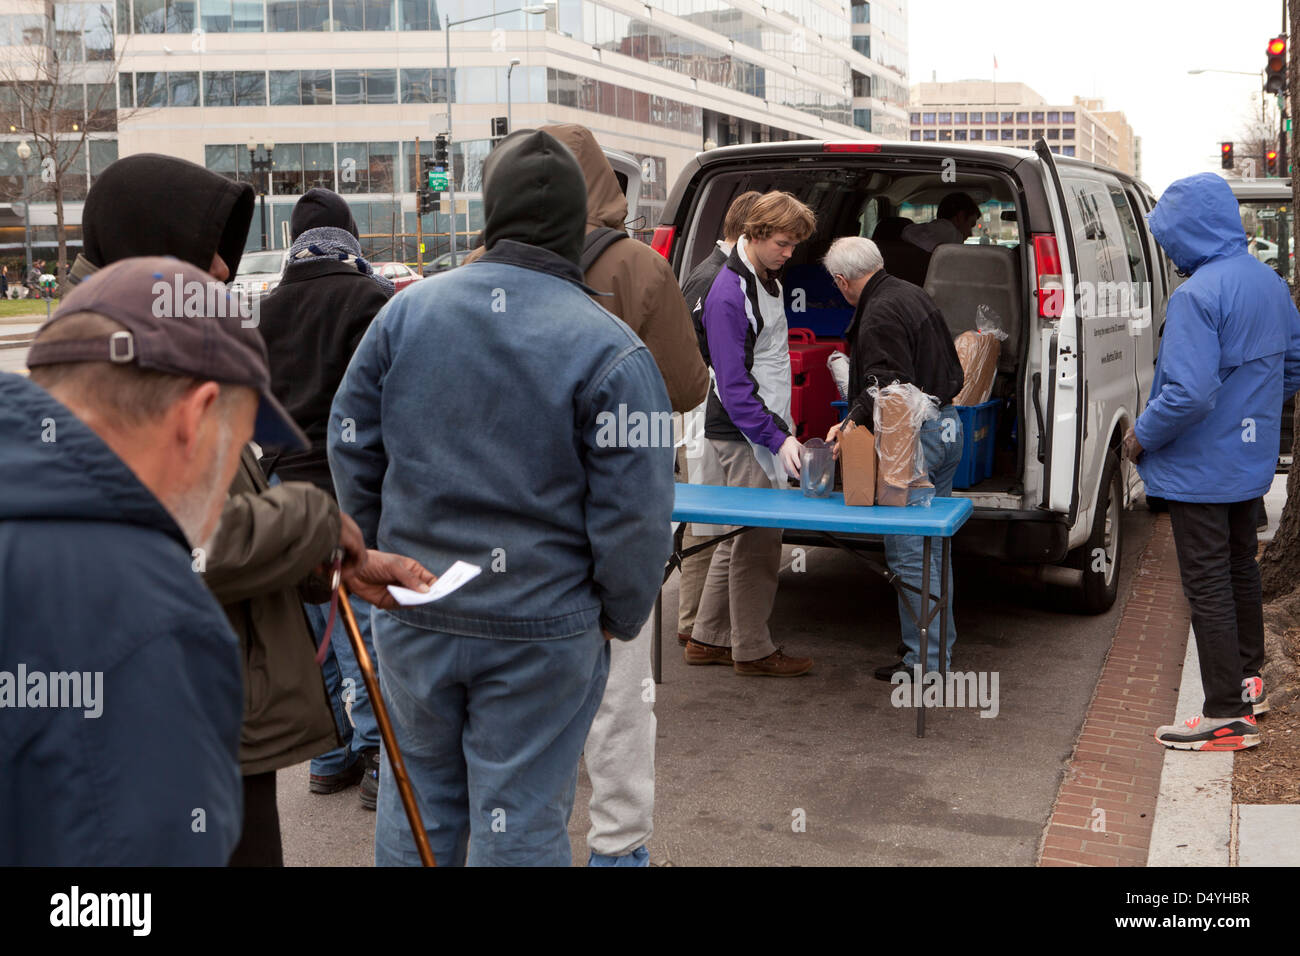 Charming Homeless Men Standing In Line For Soup Kitchen Van   Washington, DC USA